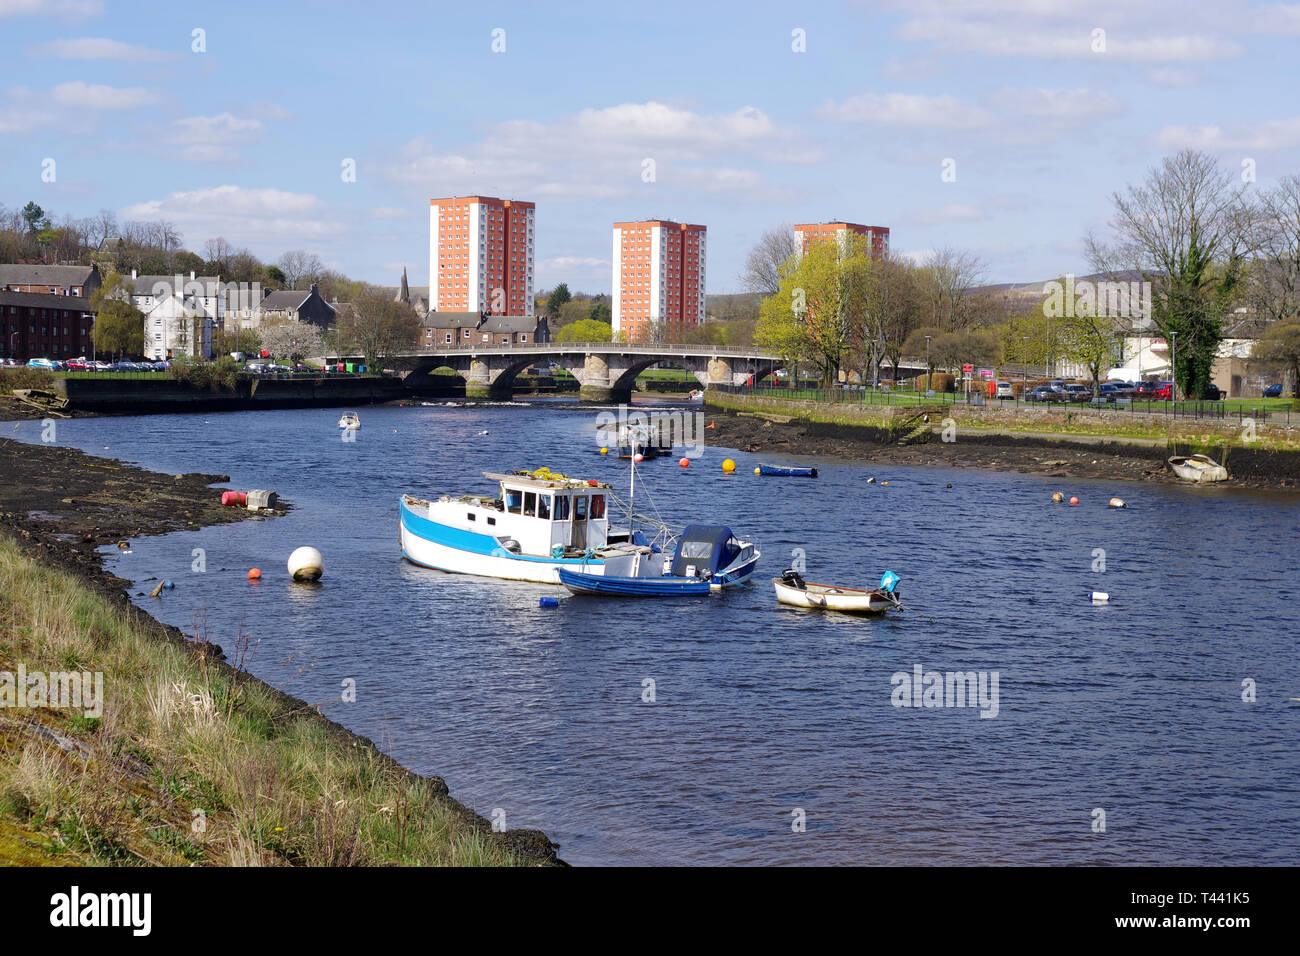 Boats moored on the River Leven in Dumbarton - Stock Image